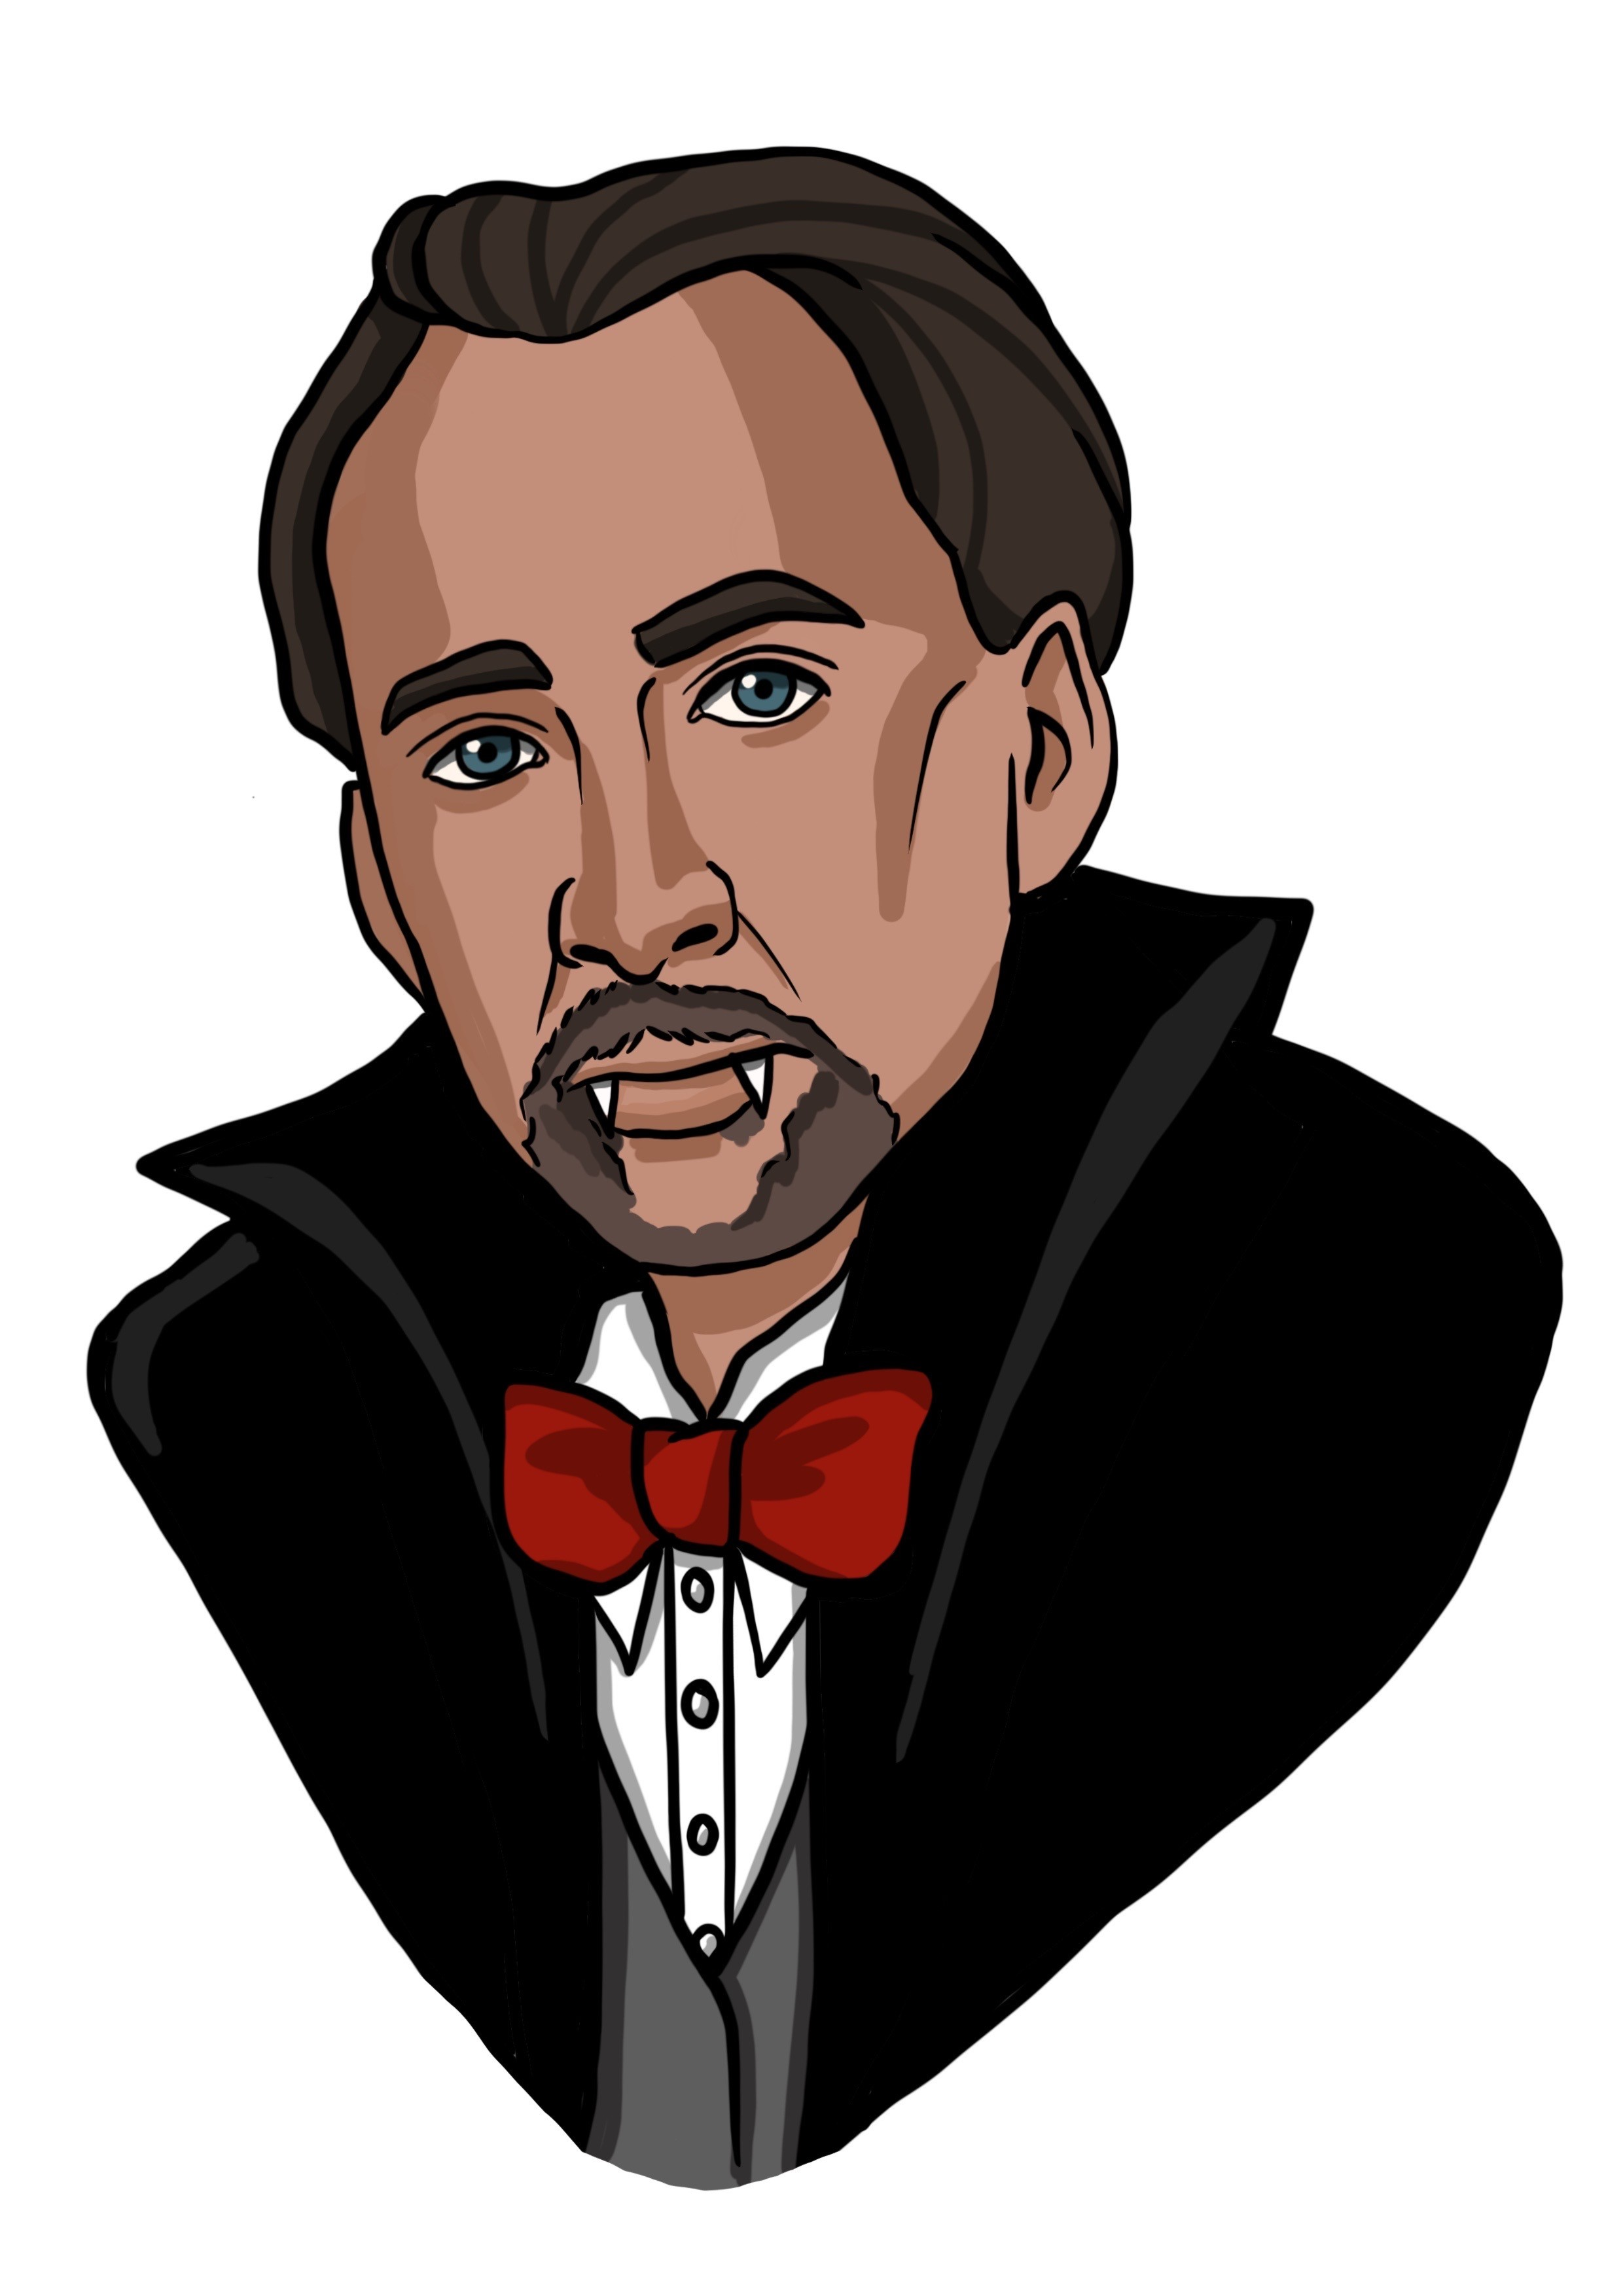 Illustration of Nicholas Cage as a Vampire